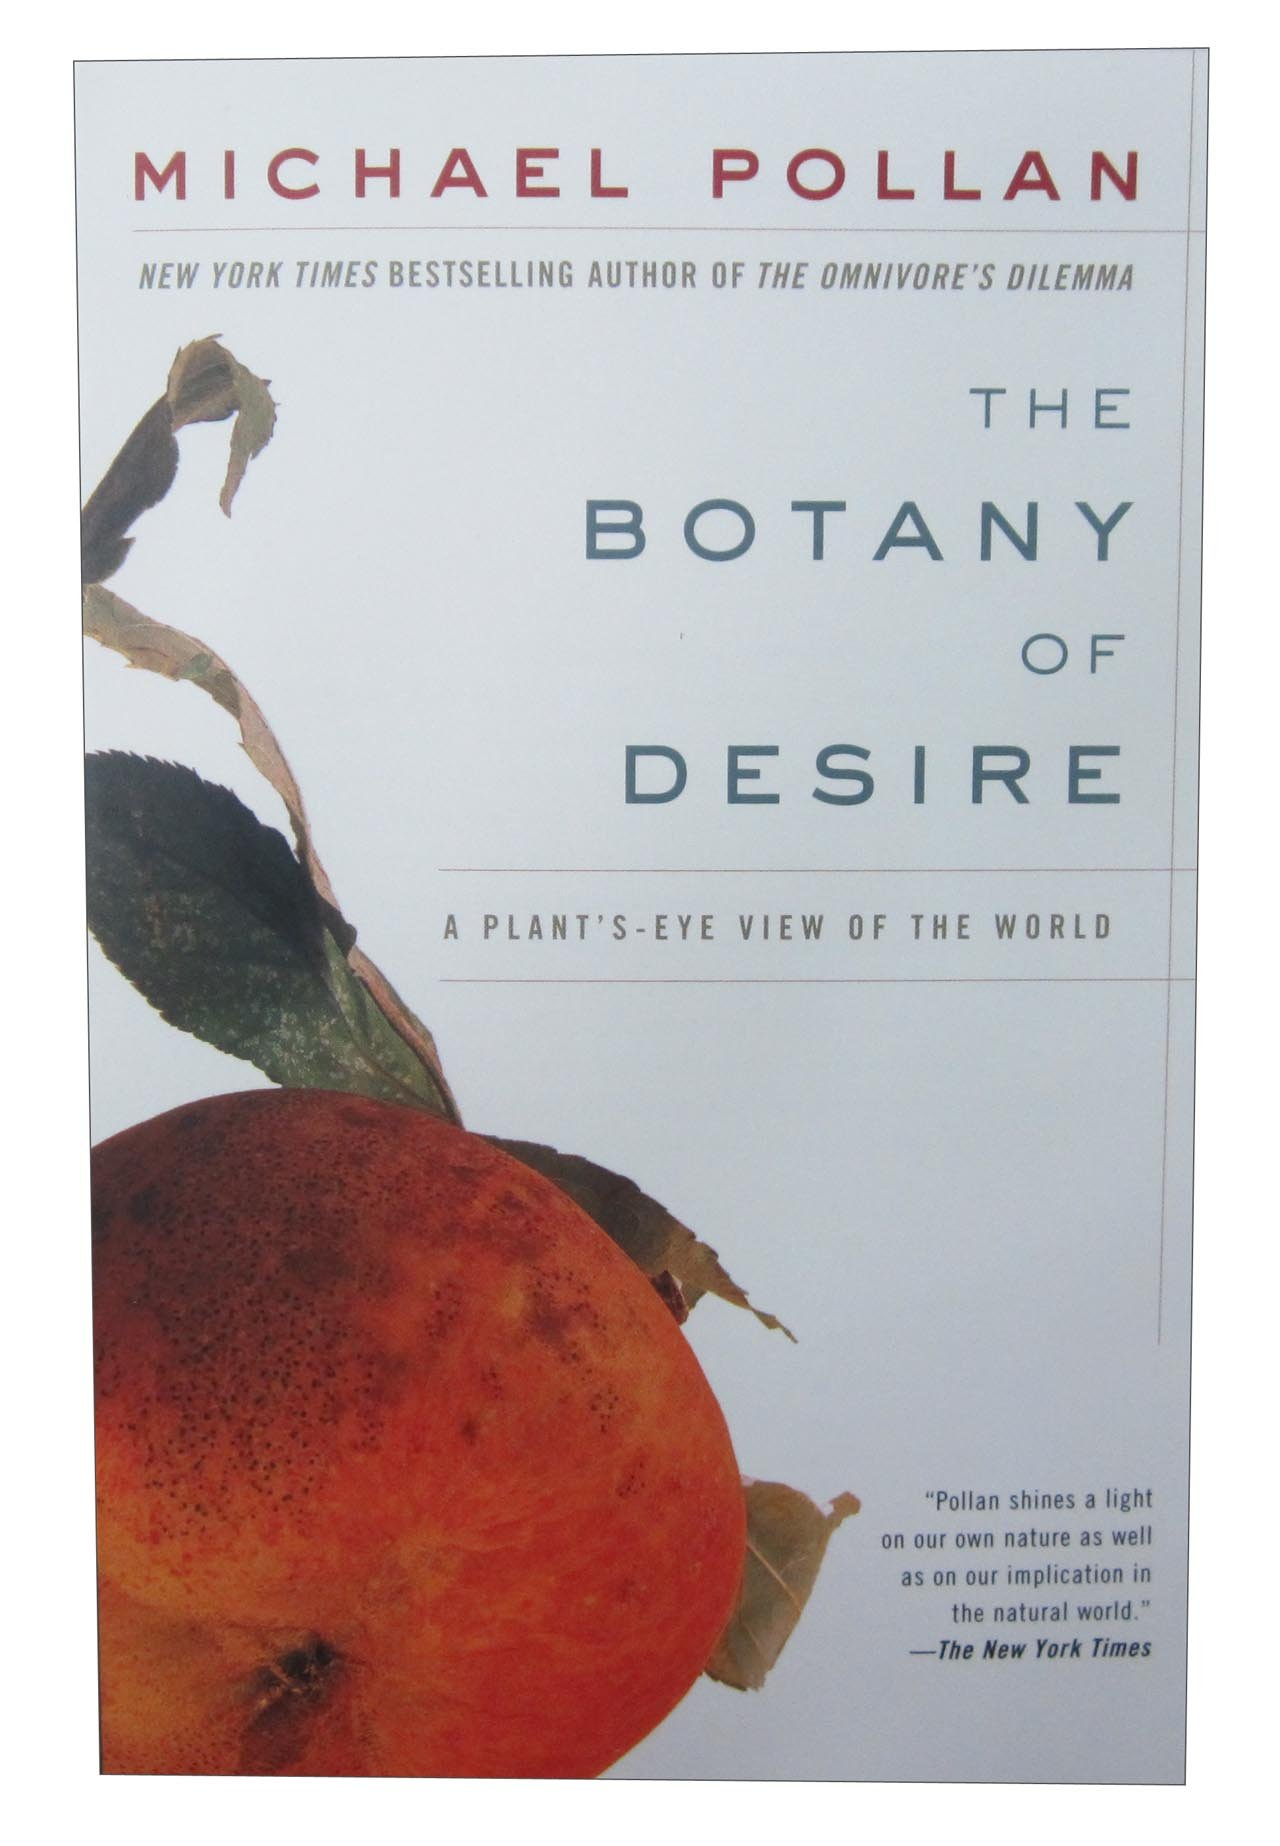 """The Botany of Desire by Michael Pollan  """" I love how he provided historical context for the forces that shaped agricultural practices for some of our most important crop plants including apple and potato. It's just a good read."""""""